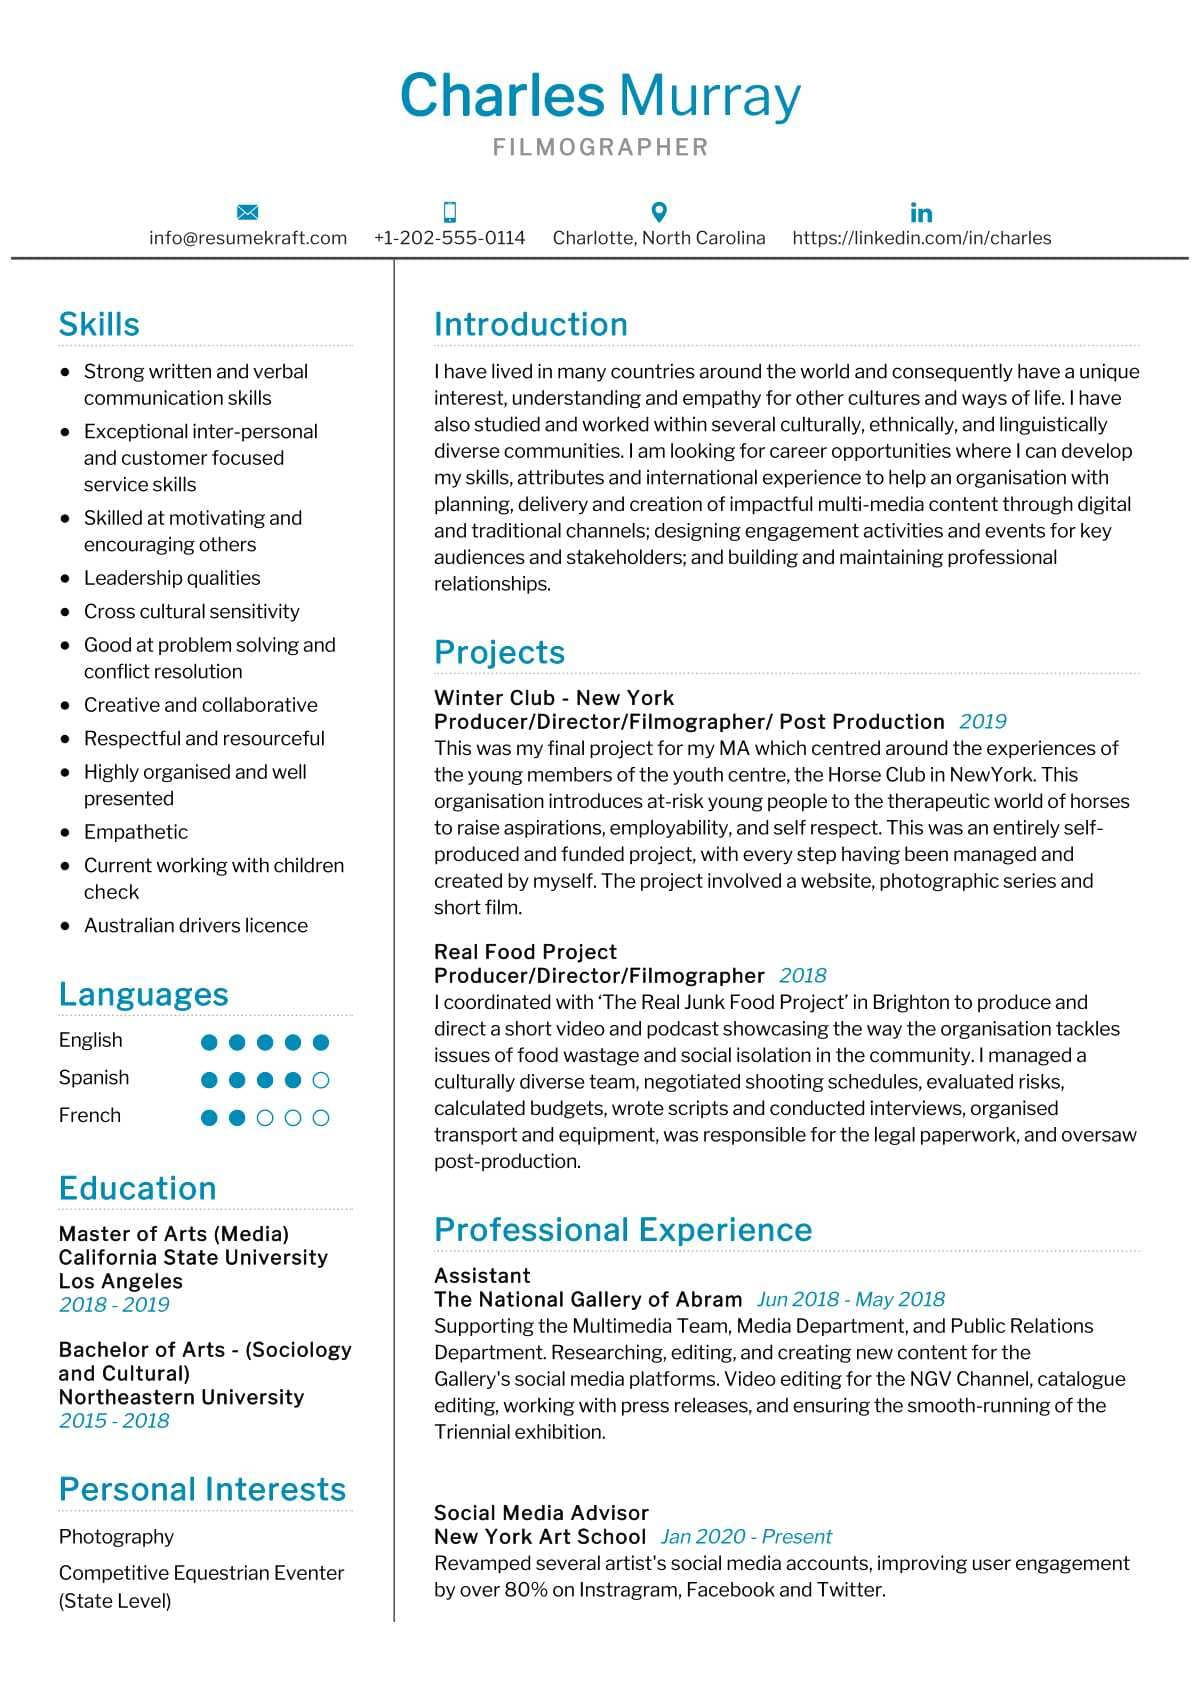 Filmographer Resume Sample